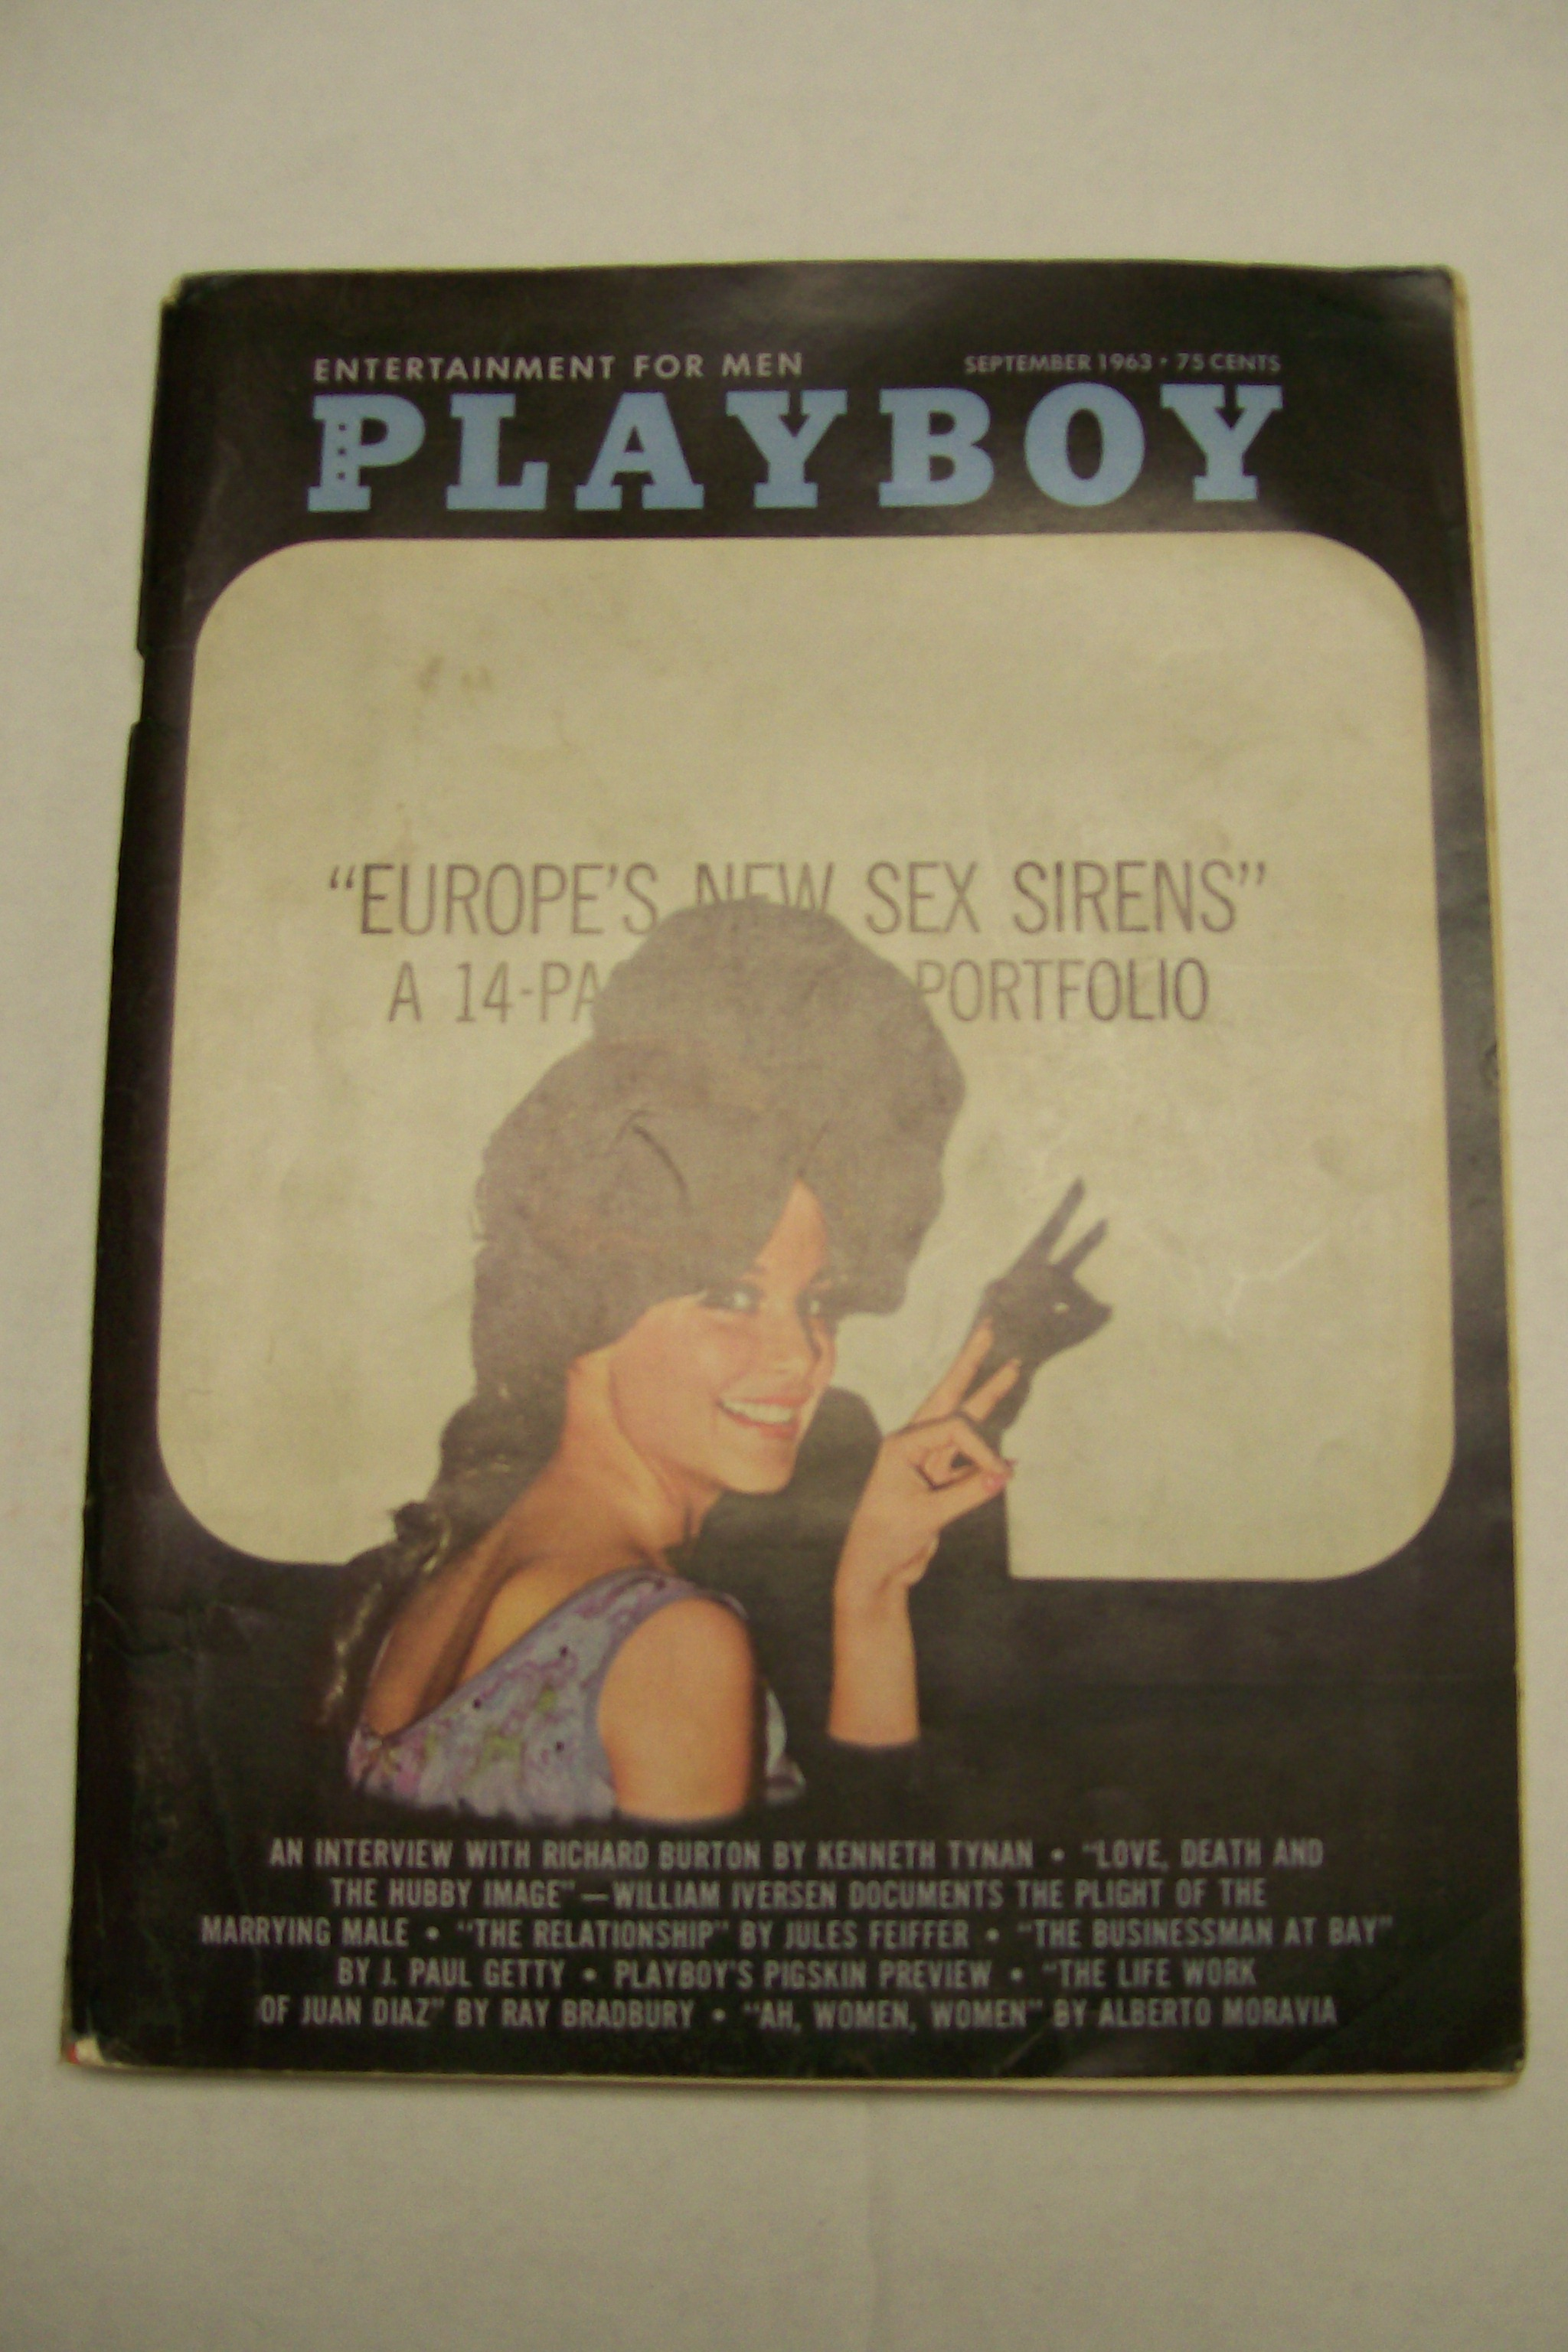 Playboy Magazine Seot.1963 Complete with Centerfold